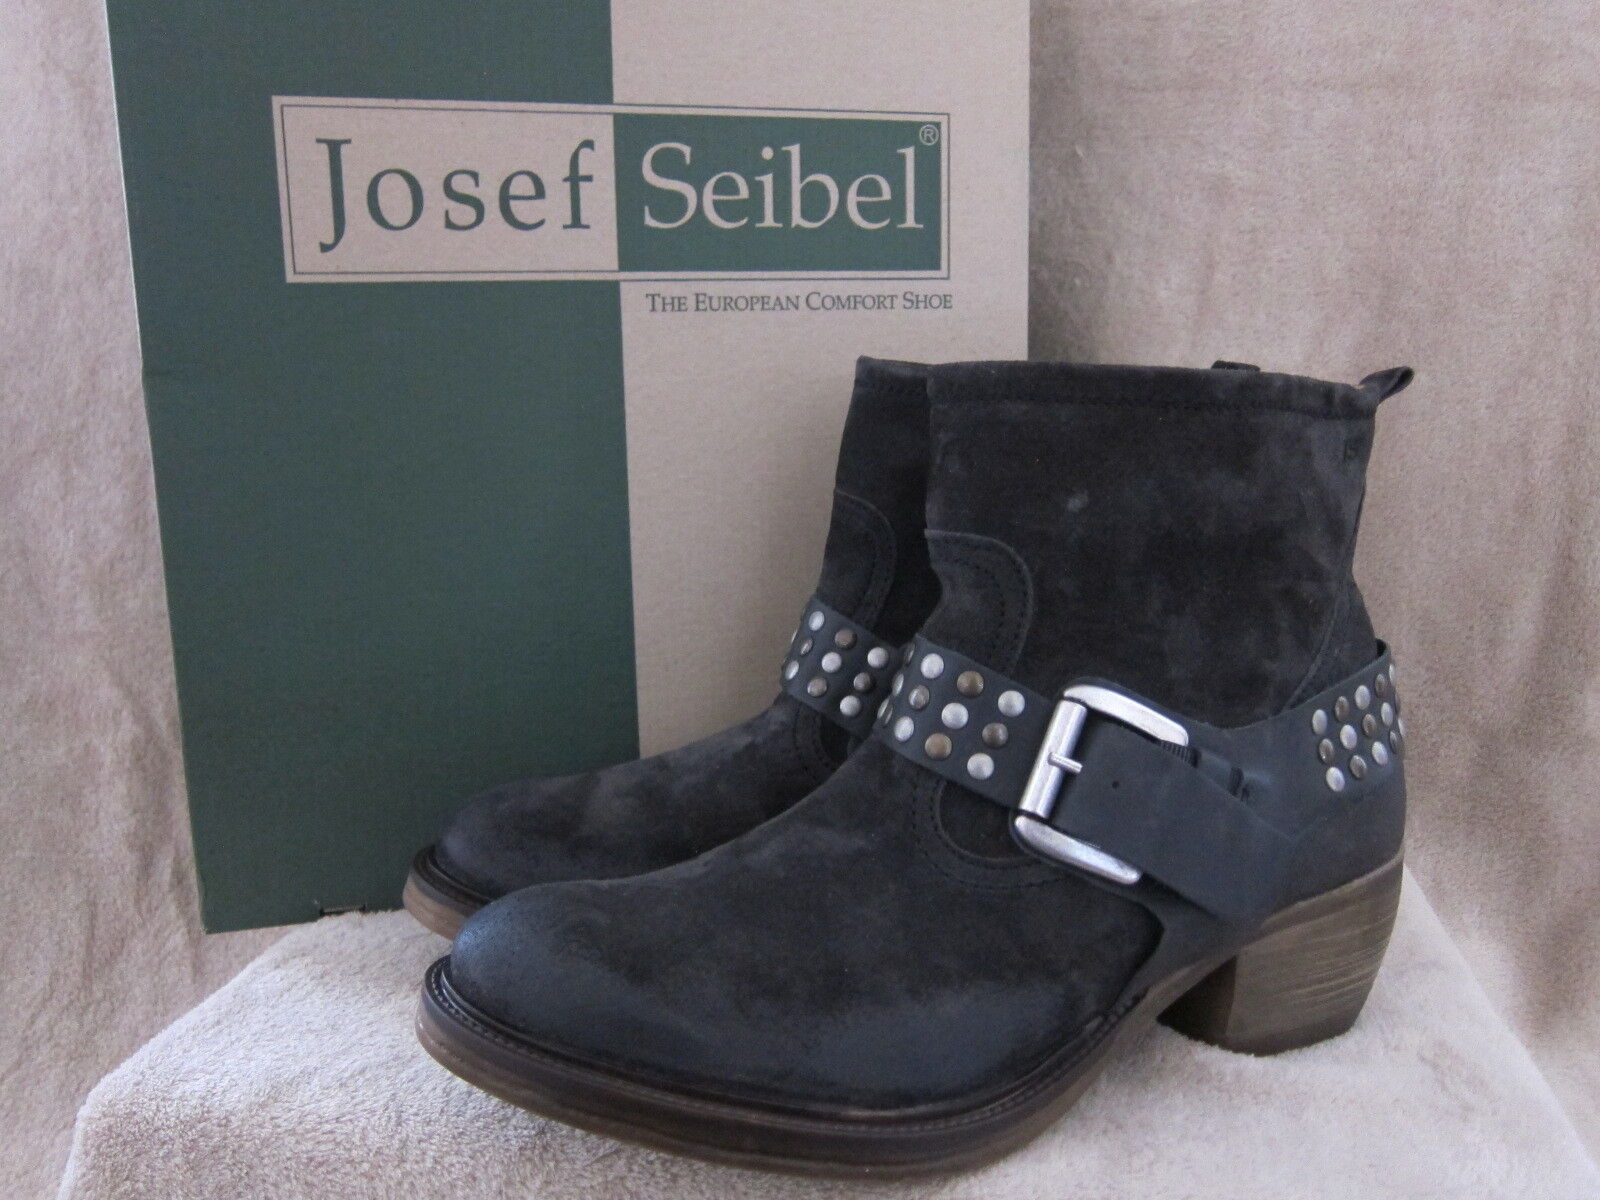 JOSEF SEIBEL Womens Toni 01 Titan Slip On Boots Shoes US 10 - 10.5 M NWB